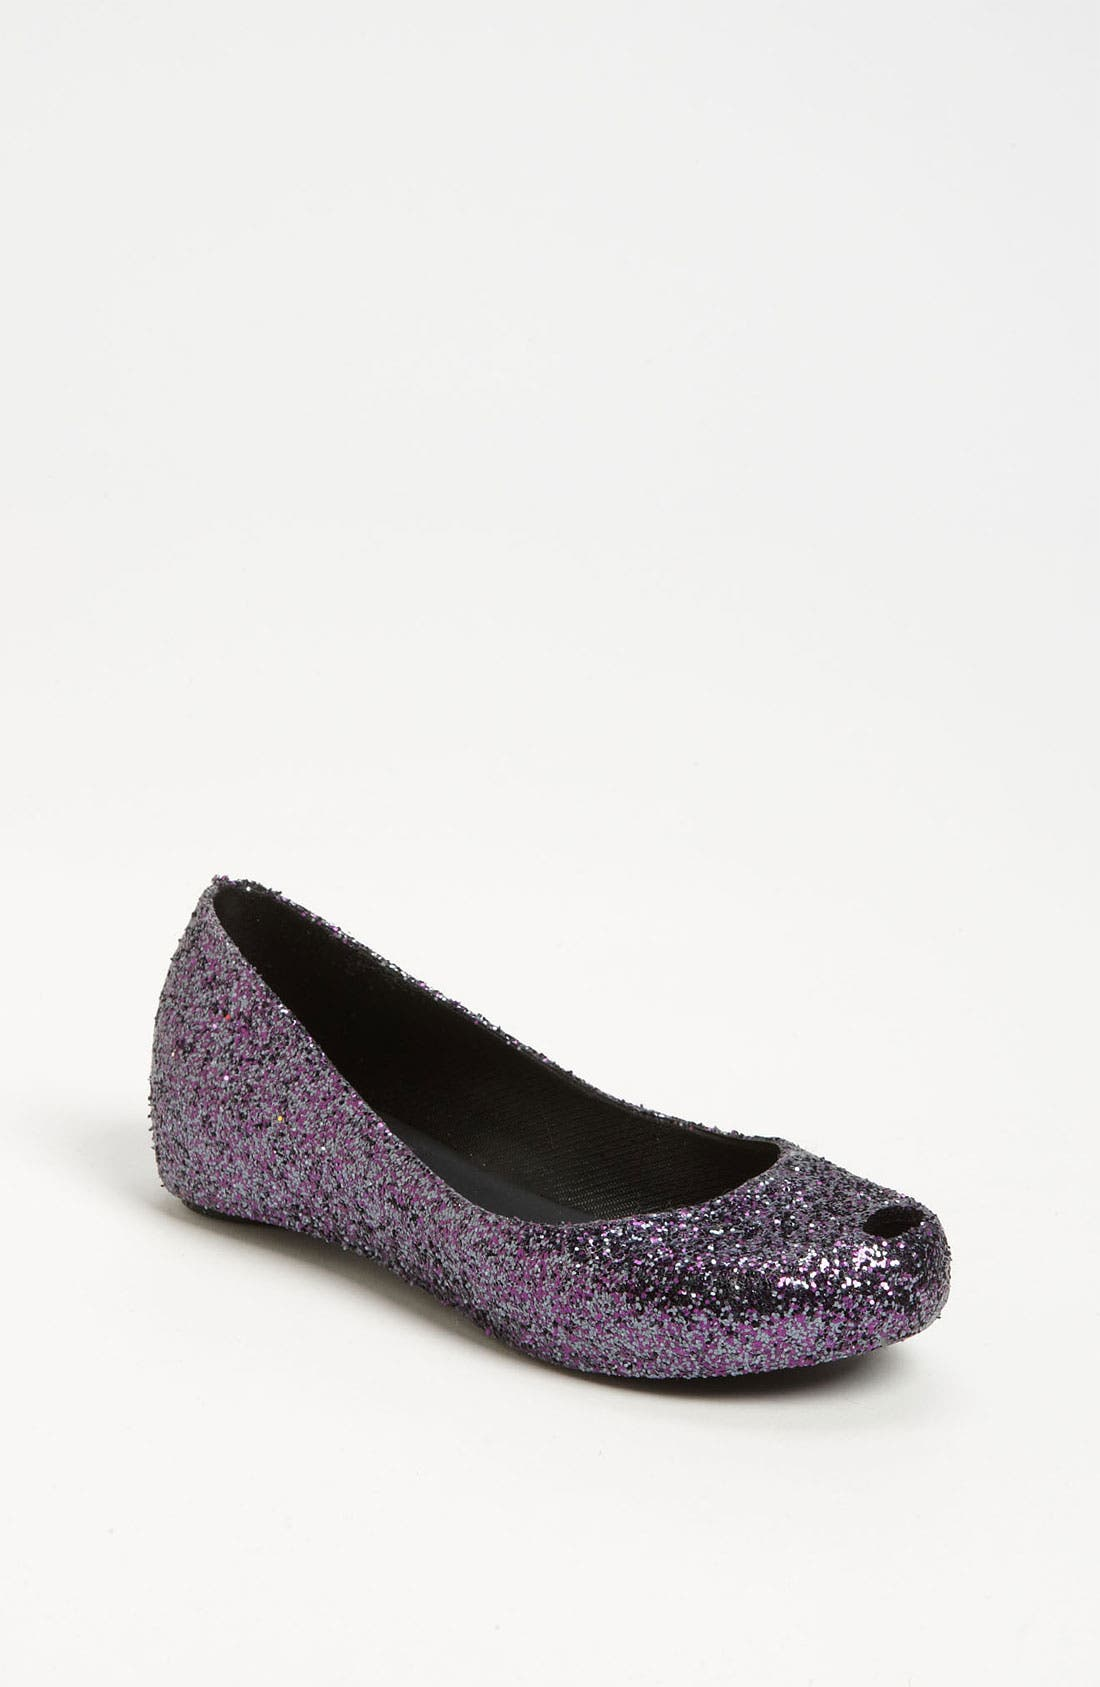 Alternate Image 1 Selected - Mini Melissa 'Ultragirl Glitter' Flat (Toddler & Little Kid)